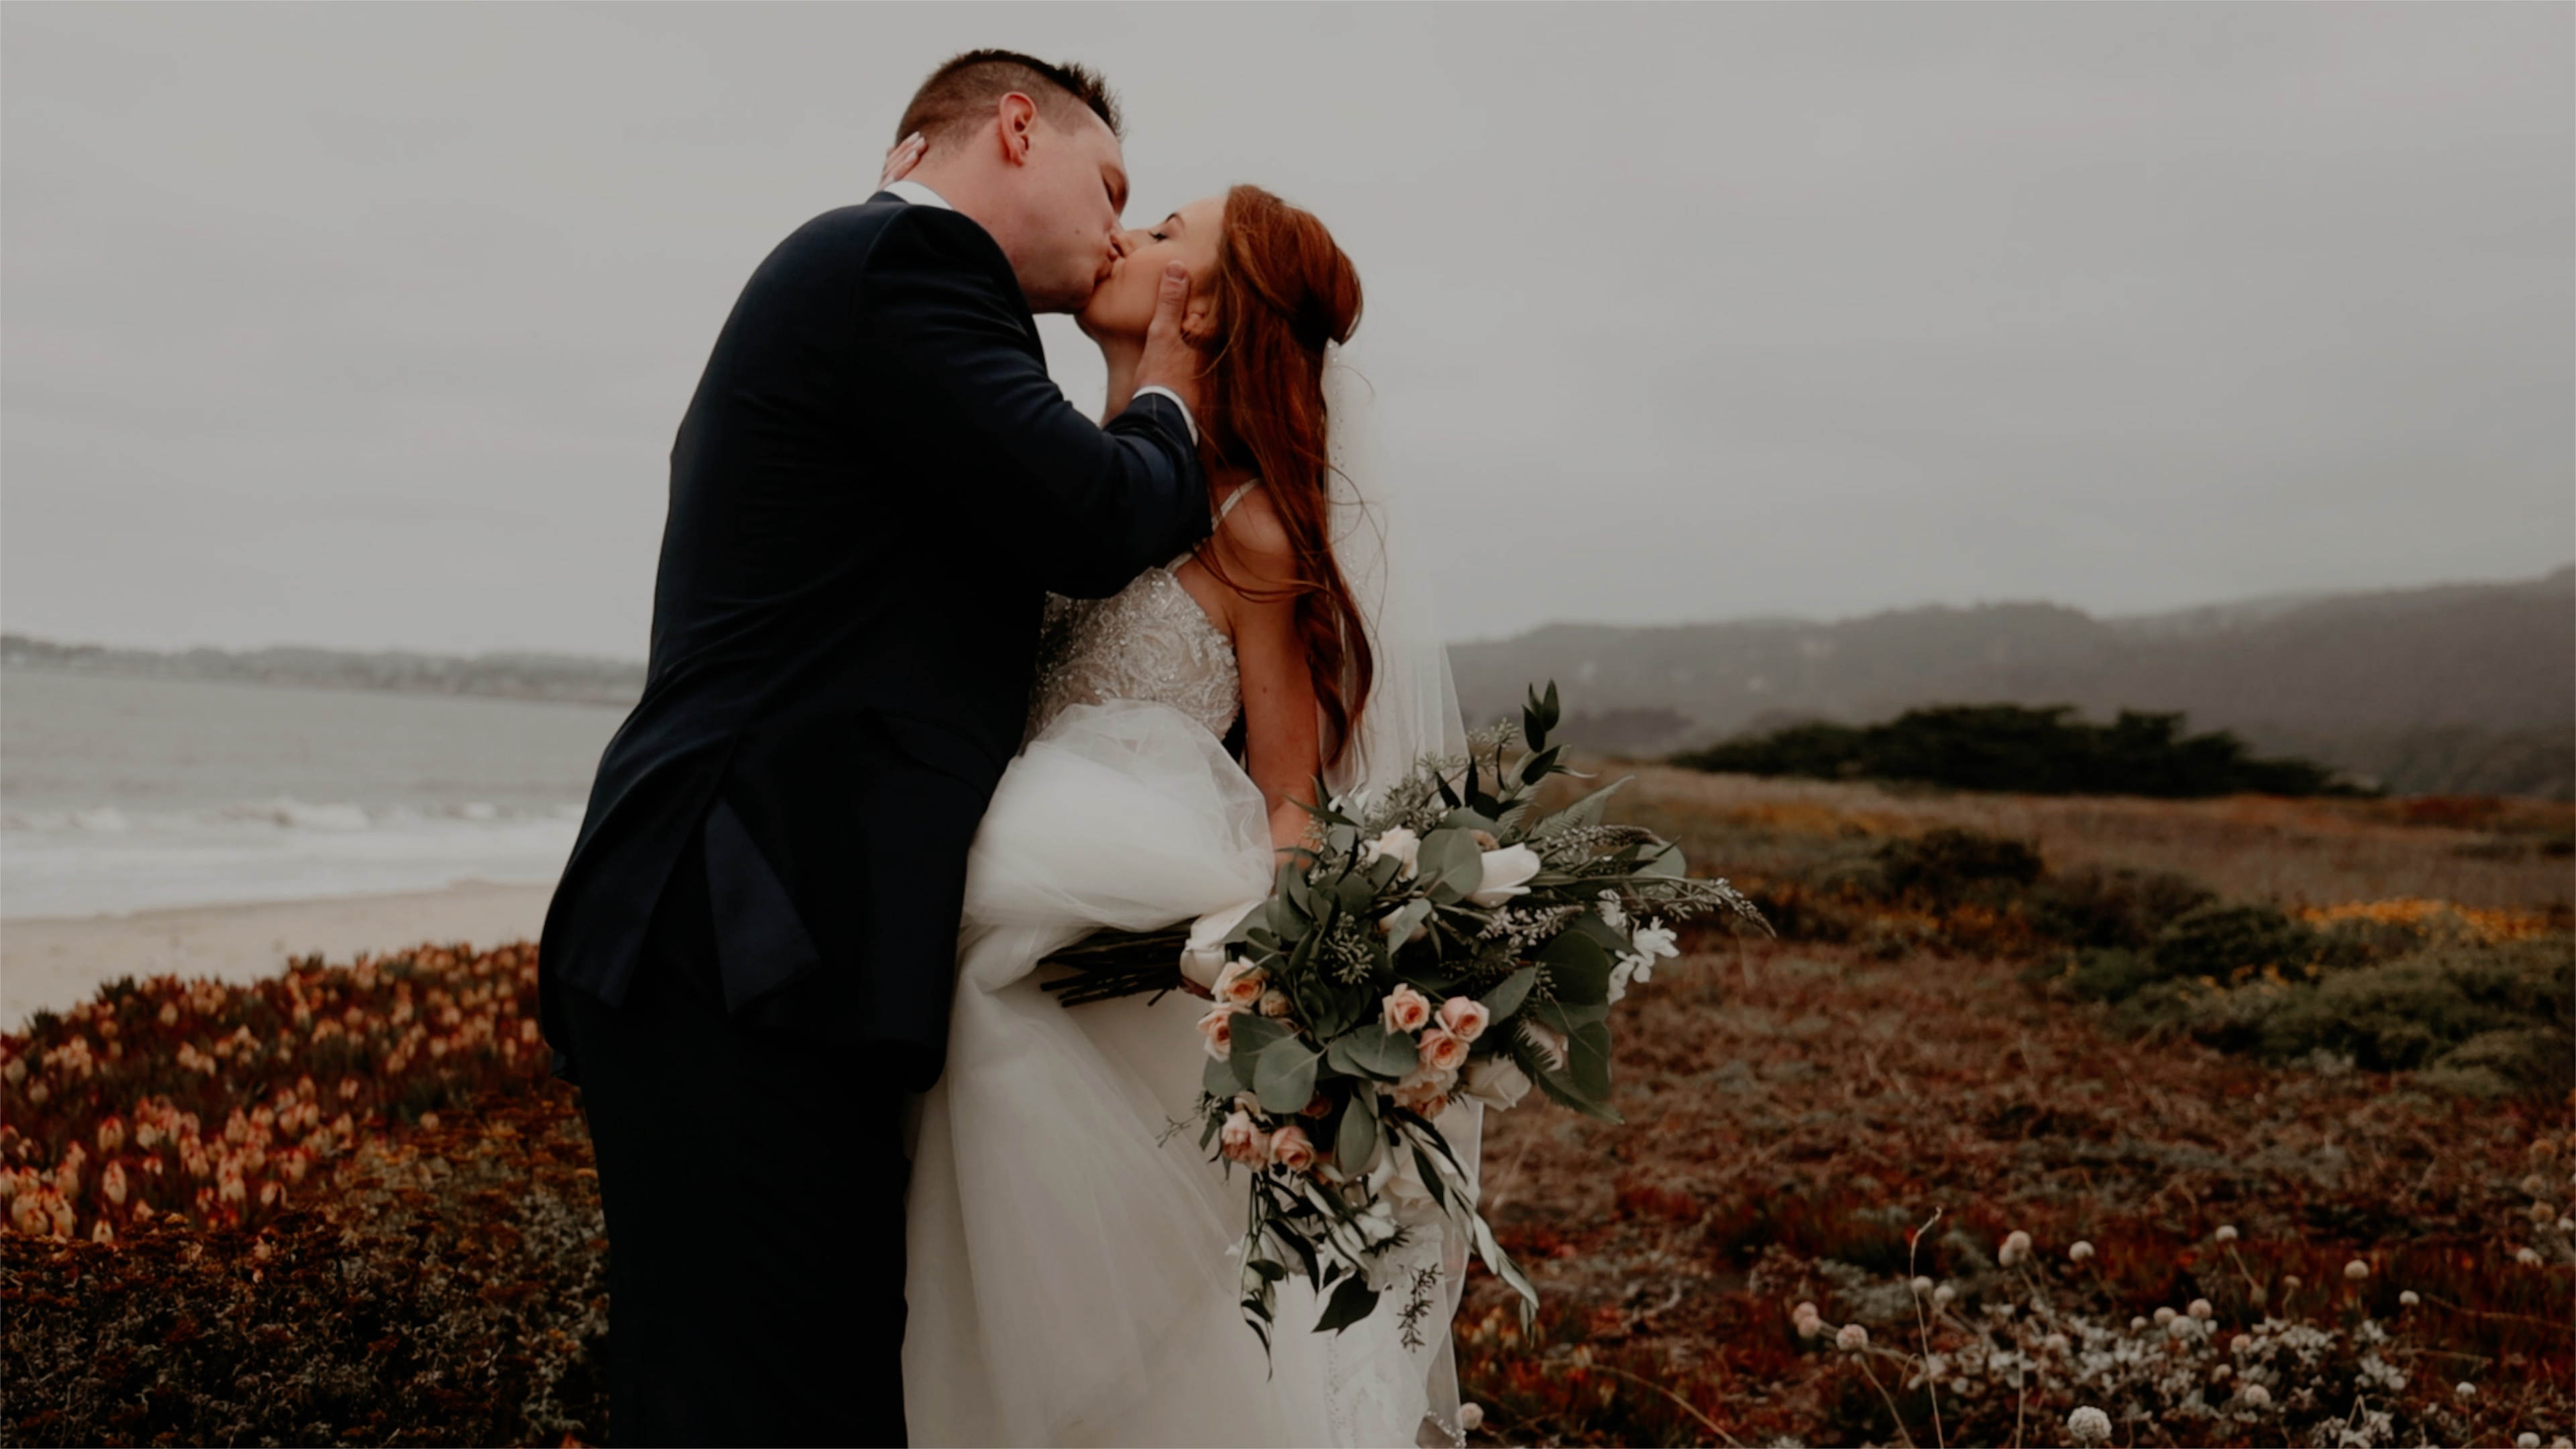 Amanda + Andrew | Half Moon Bay, California | a beach